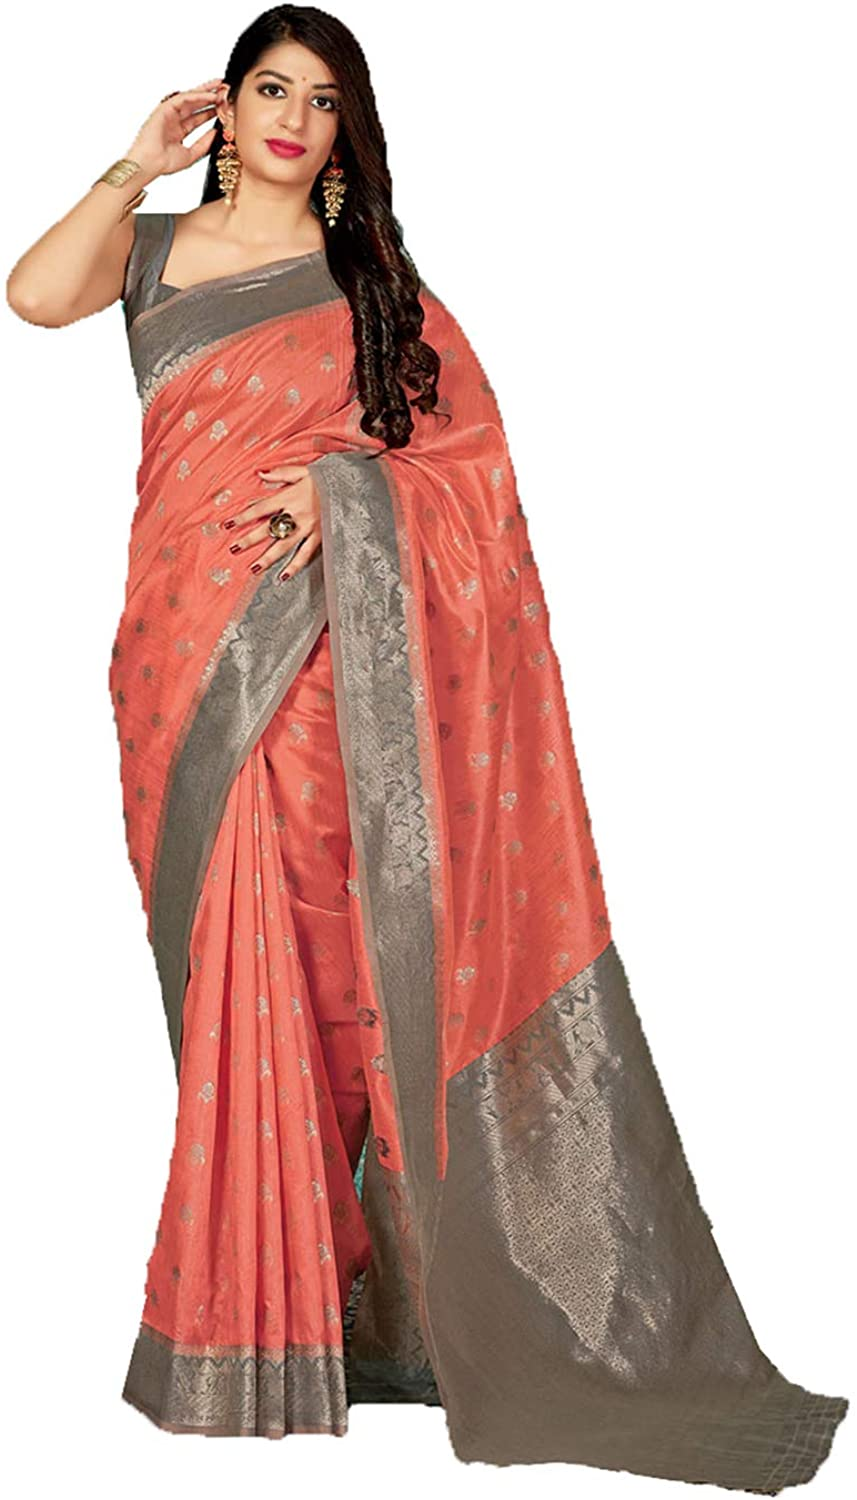 Indian Saree for Women Ethnic Sari Pink Sari with Unstitched Blouse. ICW2787-10